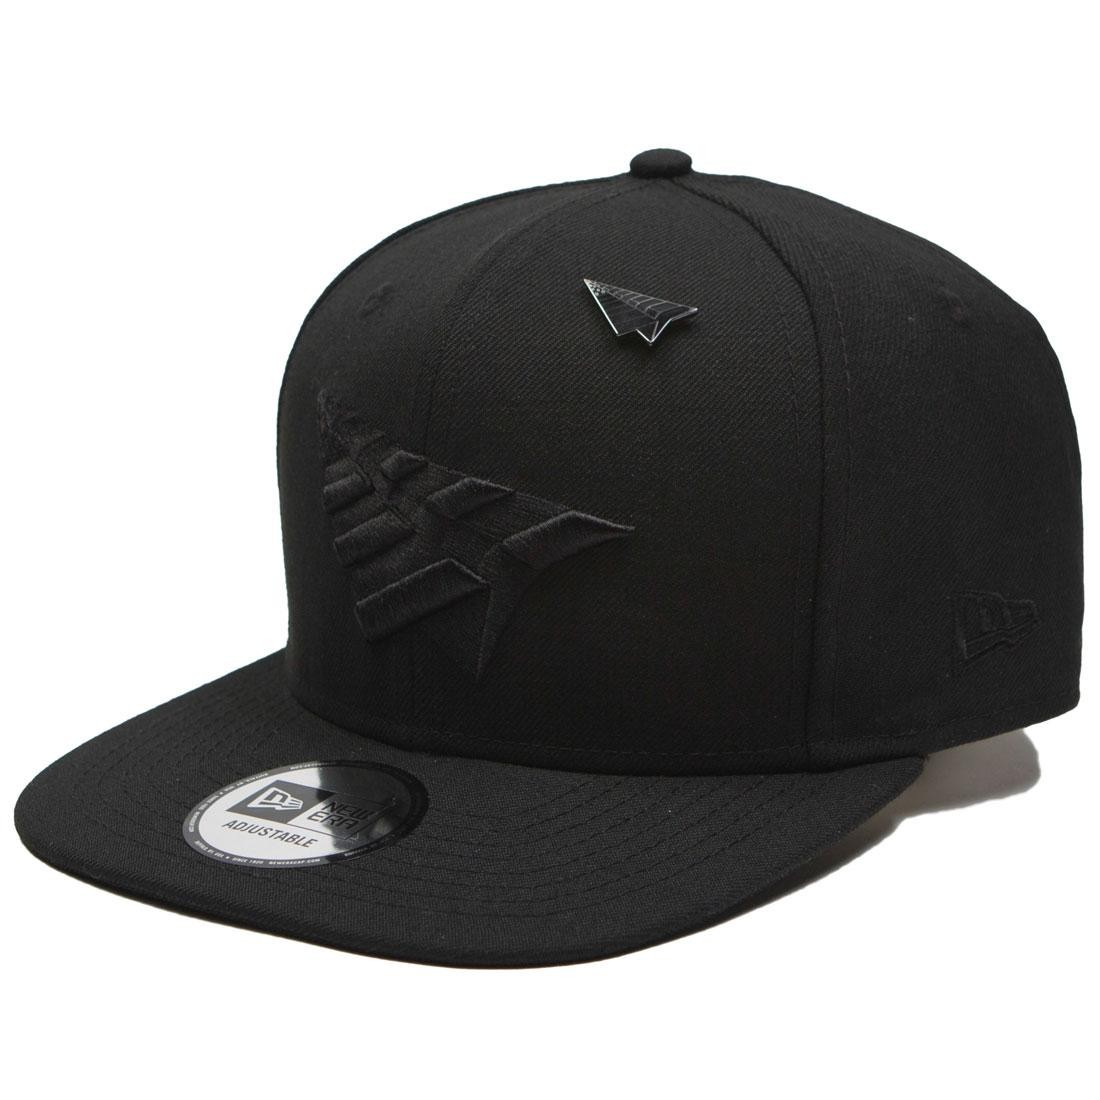 Paper Planes The Crown Snapback Cap With Pin - Blackout (black / black)